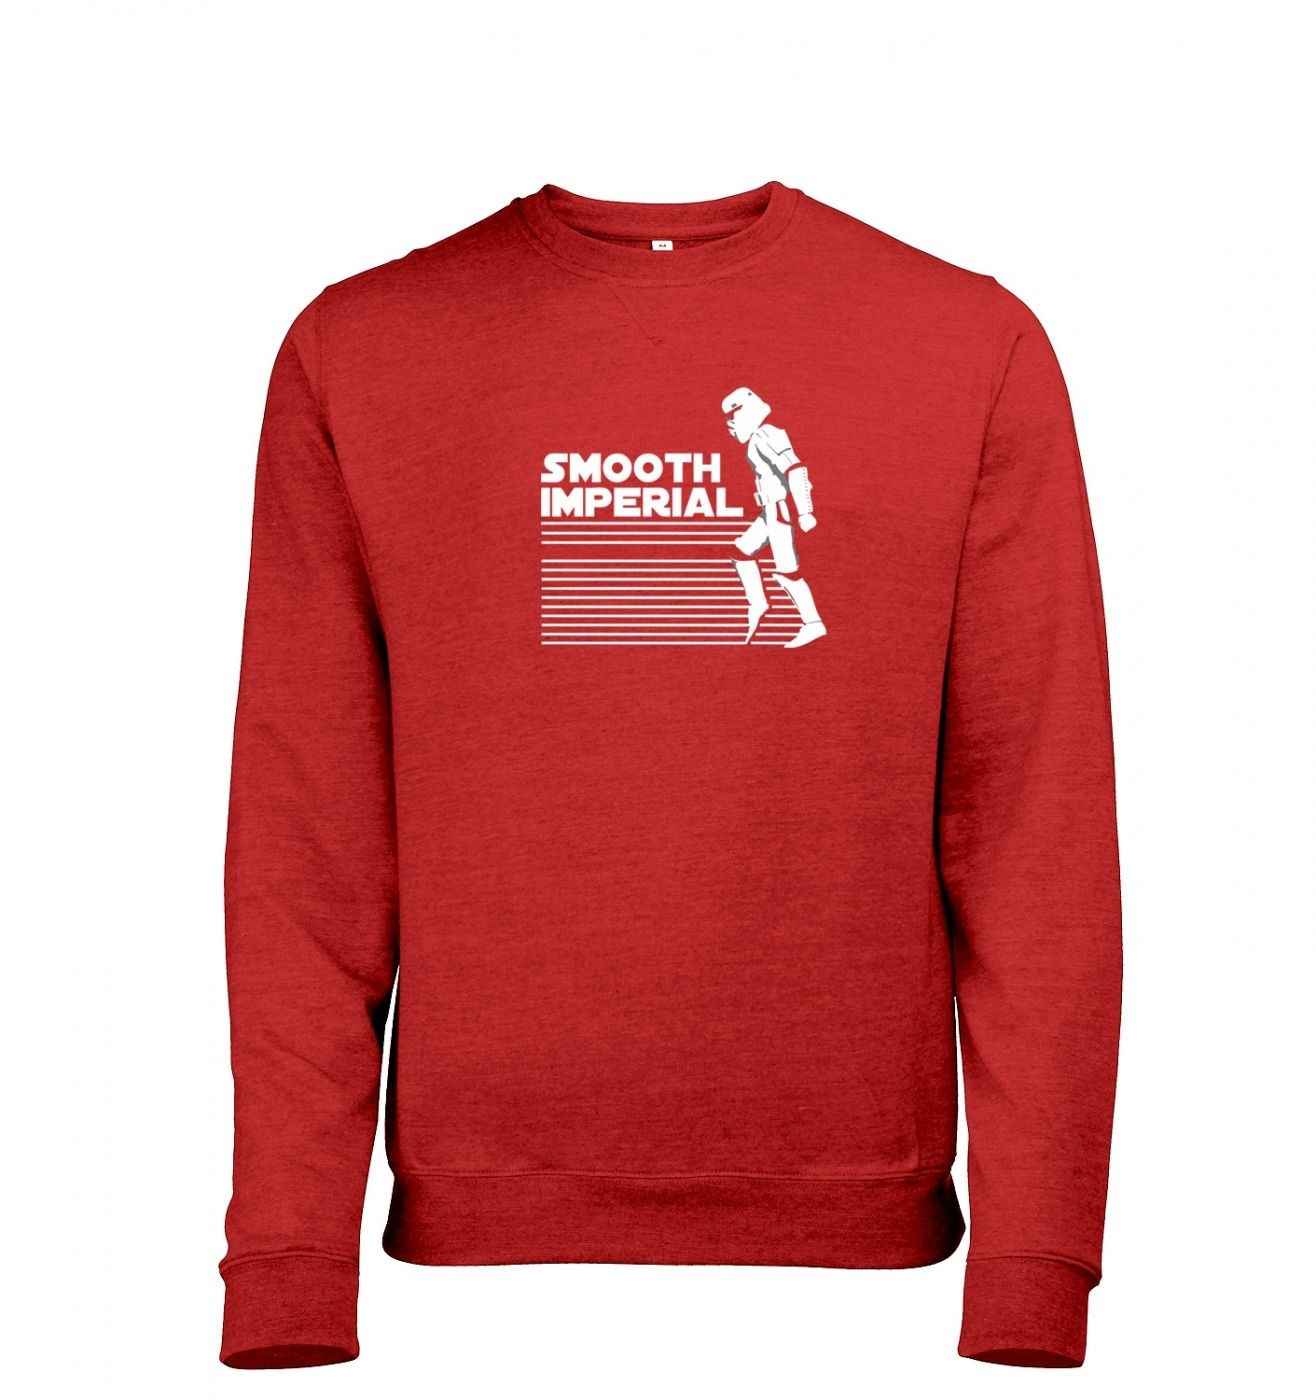 Smooth Imperial heather sweatshirt